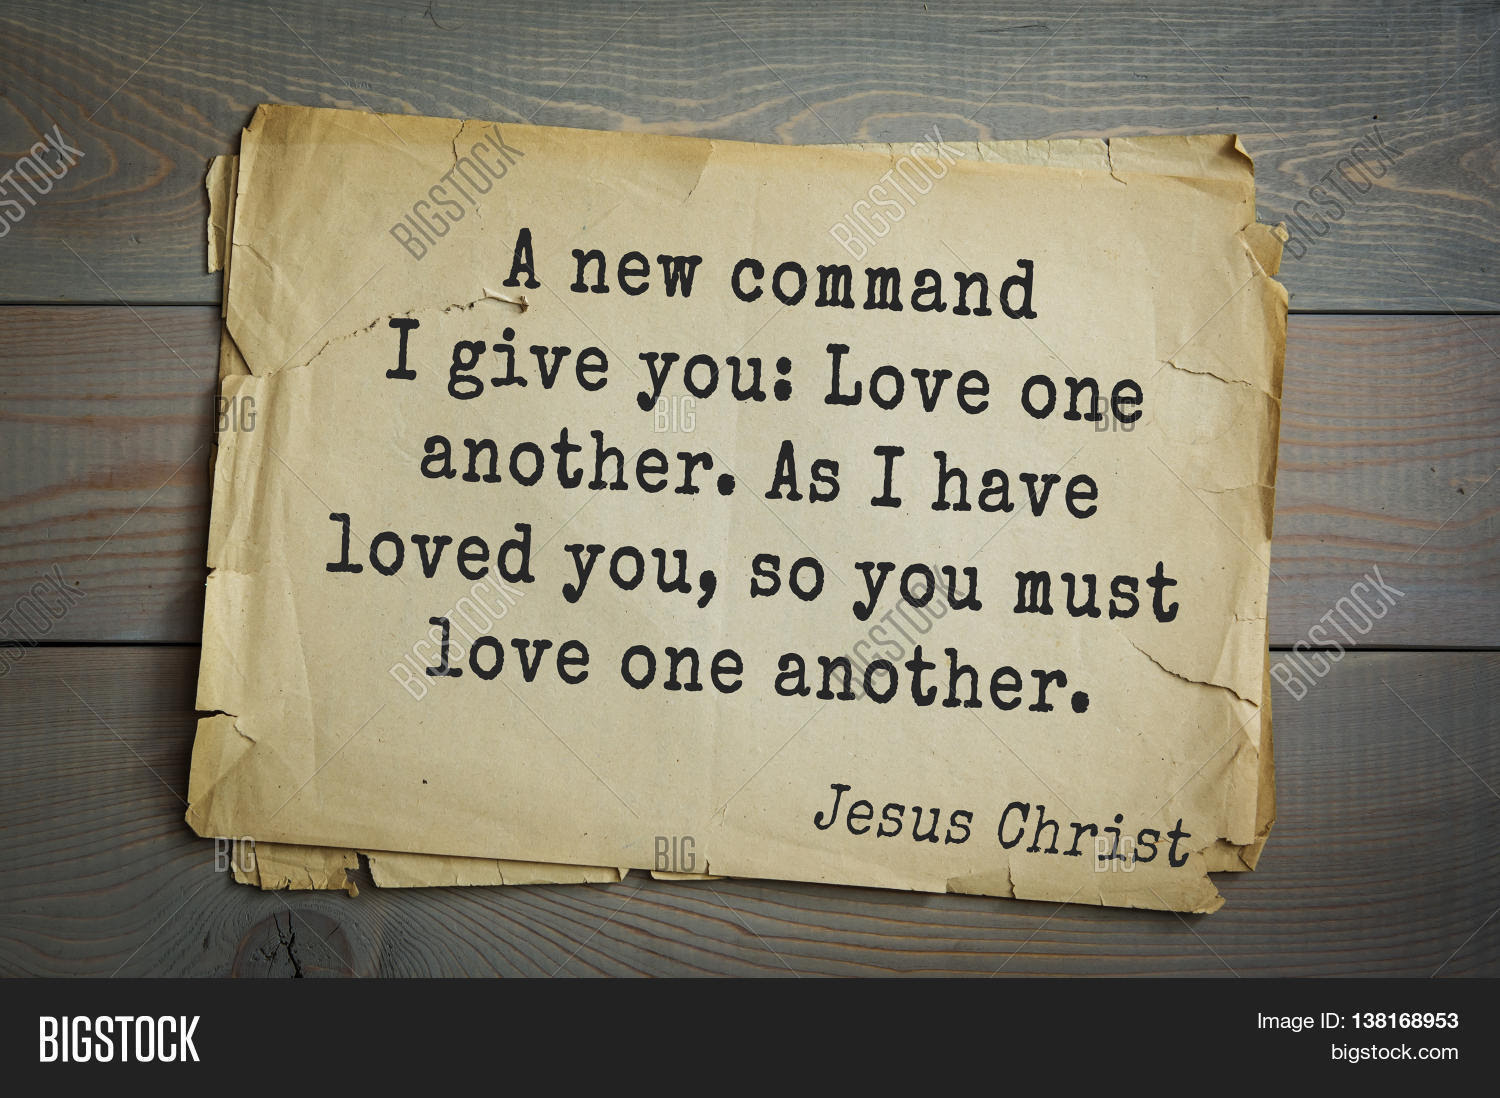 Jesus quote on old paper background A new mand I give you Love one